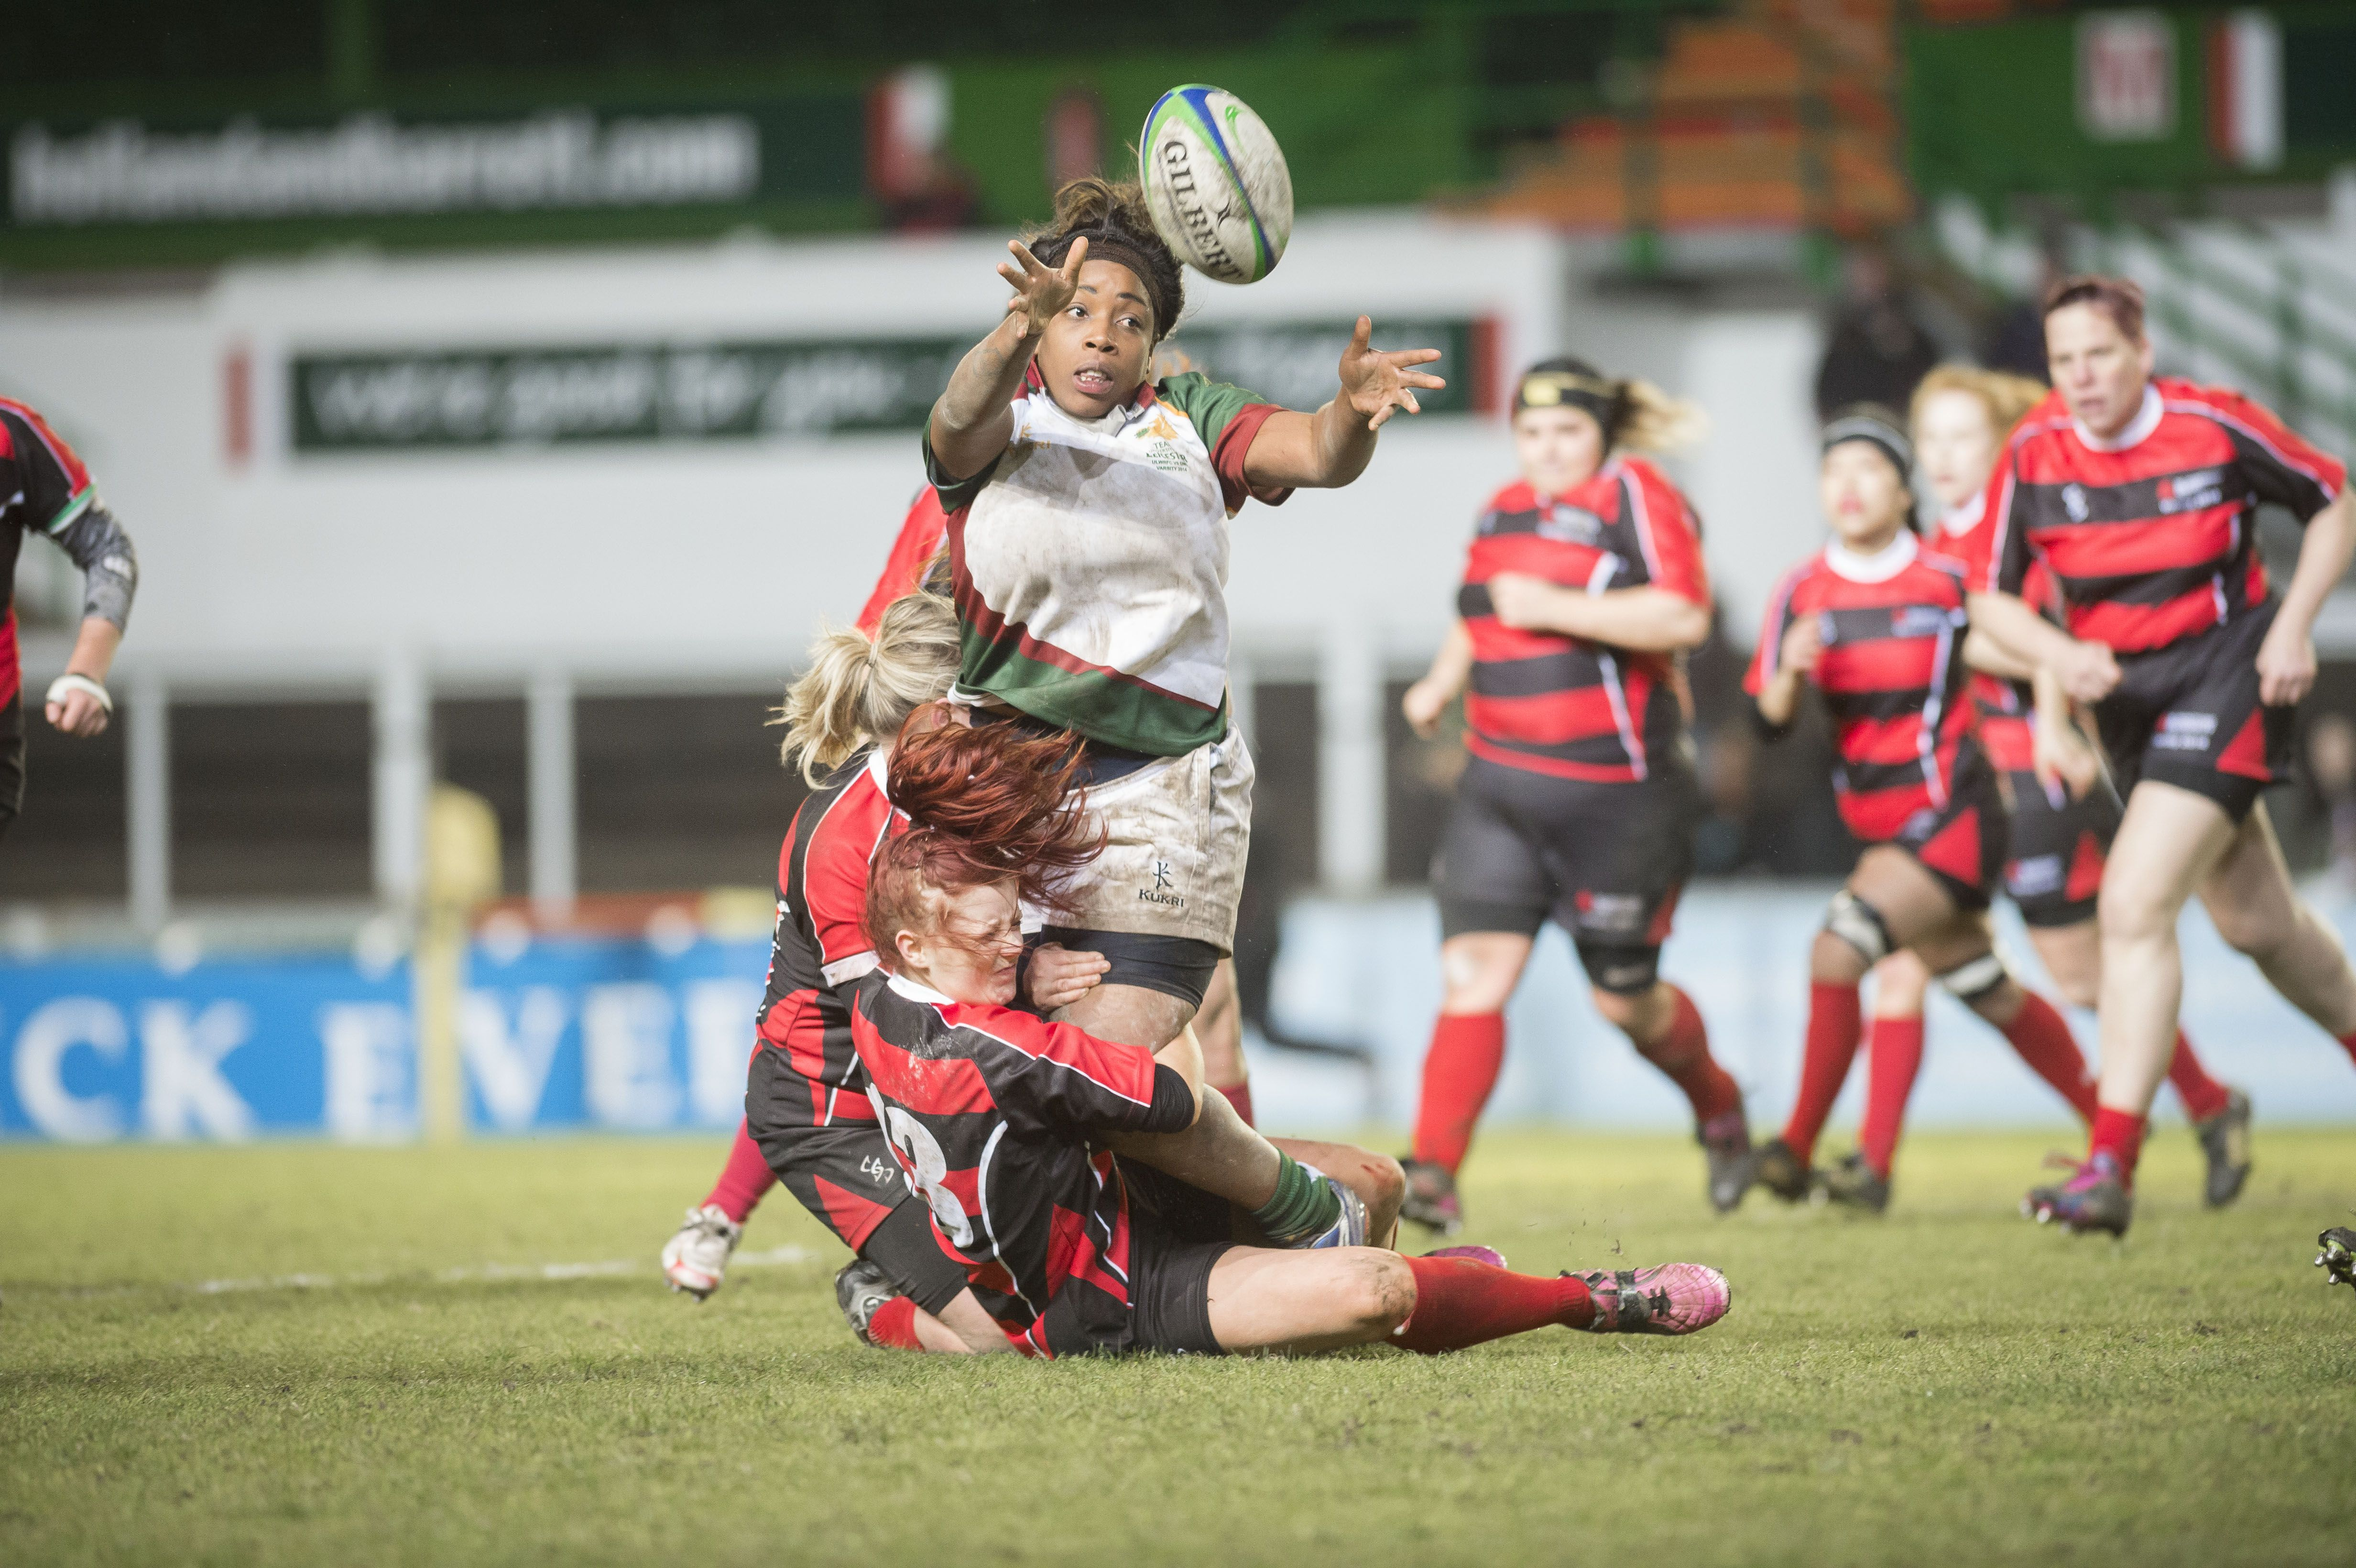 De Montfort University (DMU) take on University of Leicester in the Varsity rugby at Welford Road.